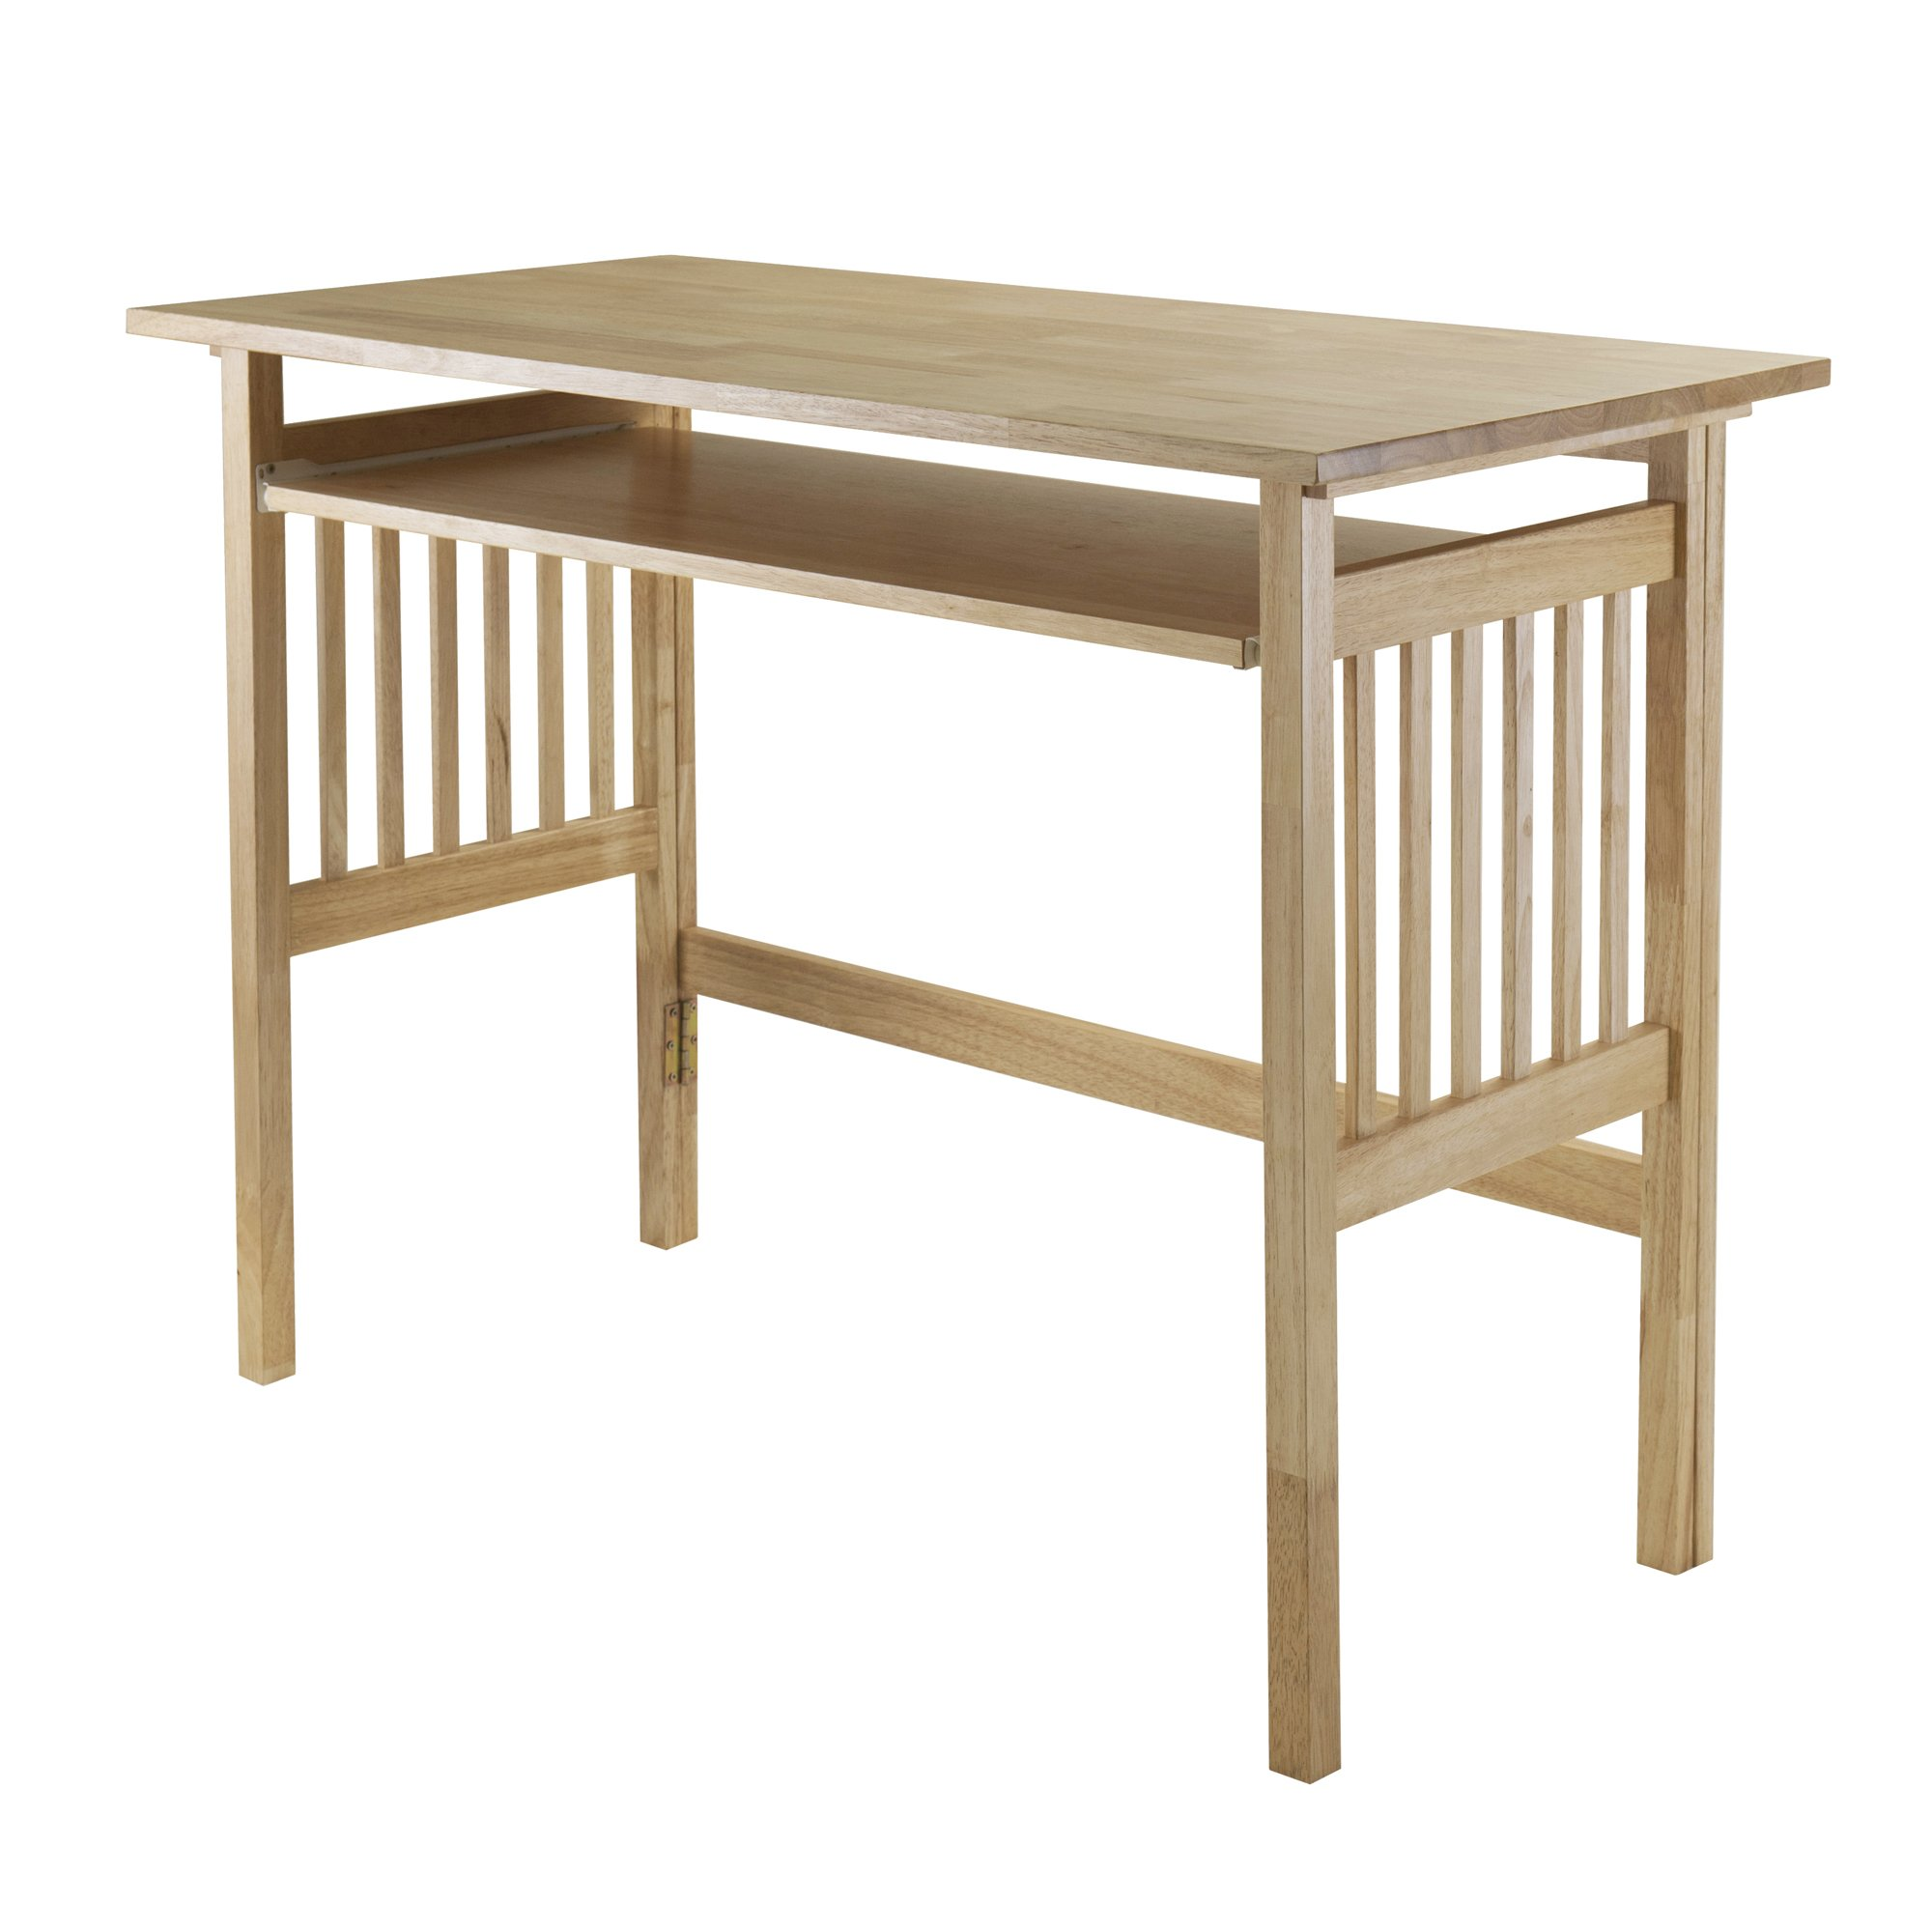 Winsome Wood 81140 Mission Home Office, Natural by Winsome Wood